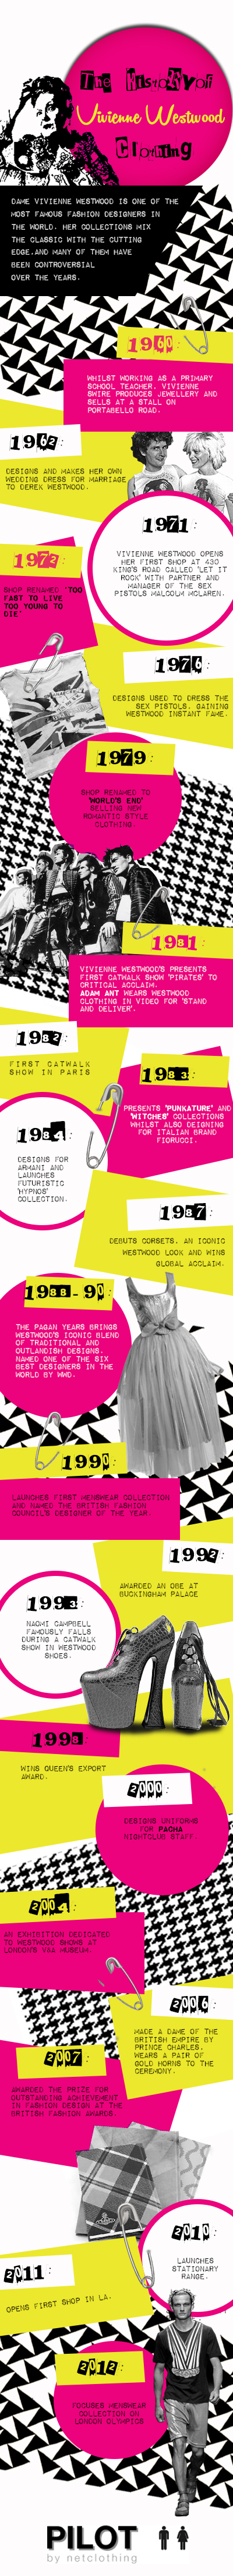 The History of Vivienne Westwood Clothing